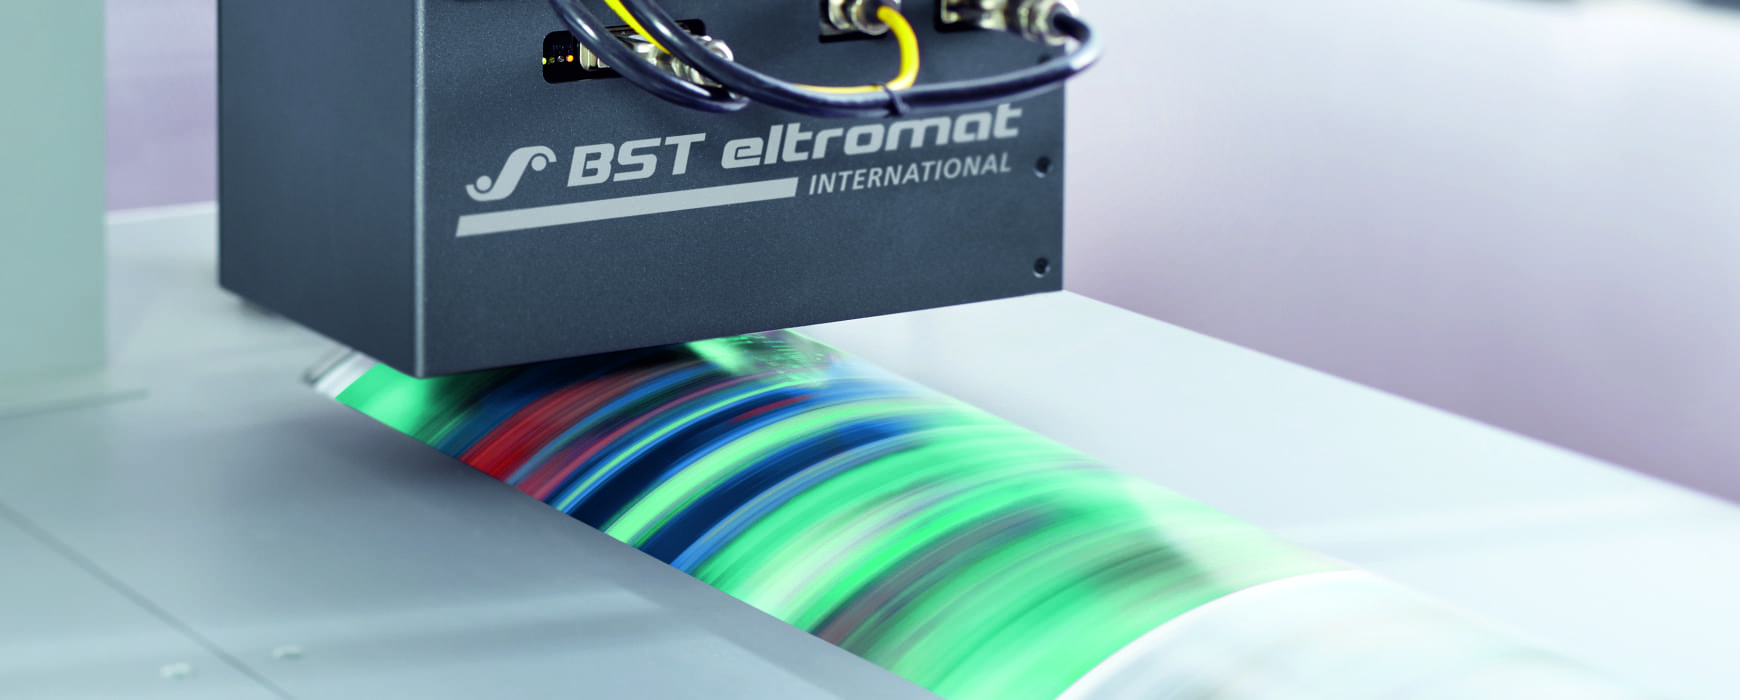 iPQ-SPECTRAL: PRECISE COLOR CONTROL DURING THE PRINTING PROCESS